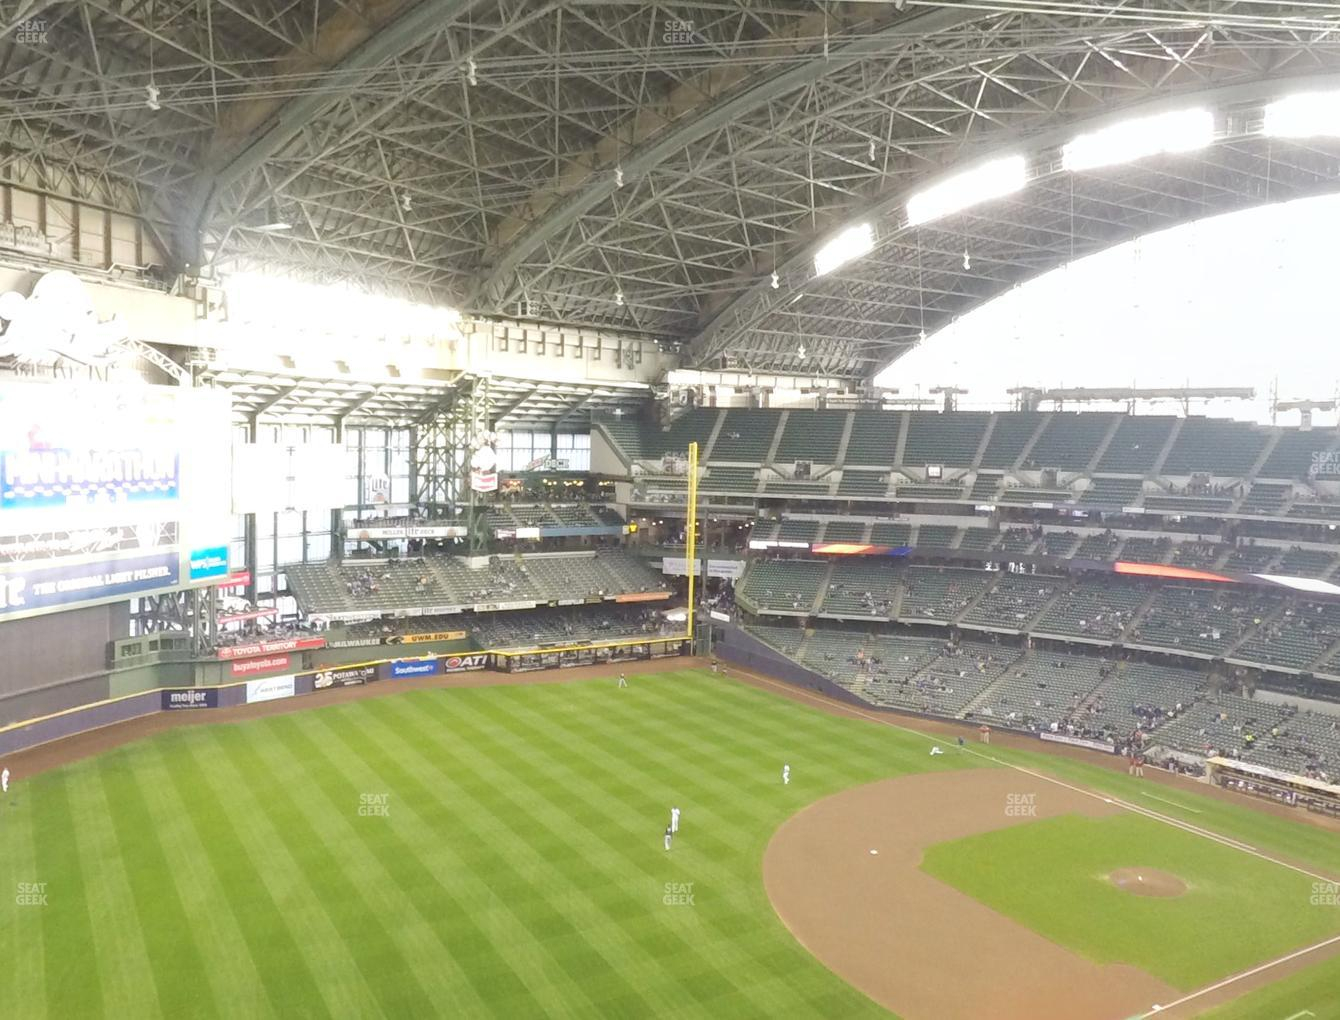 Concert at Miller Park Section 435 View